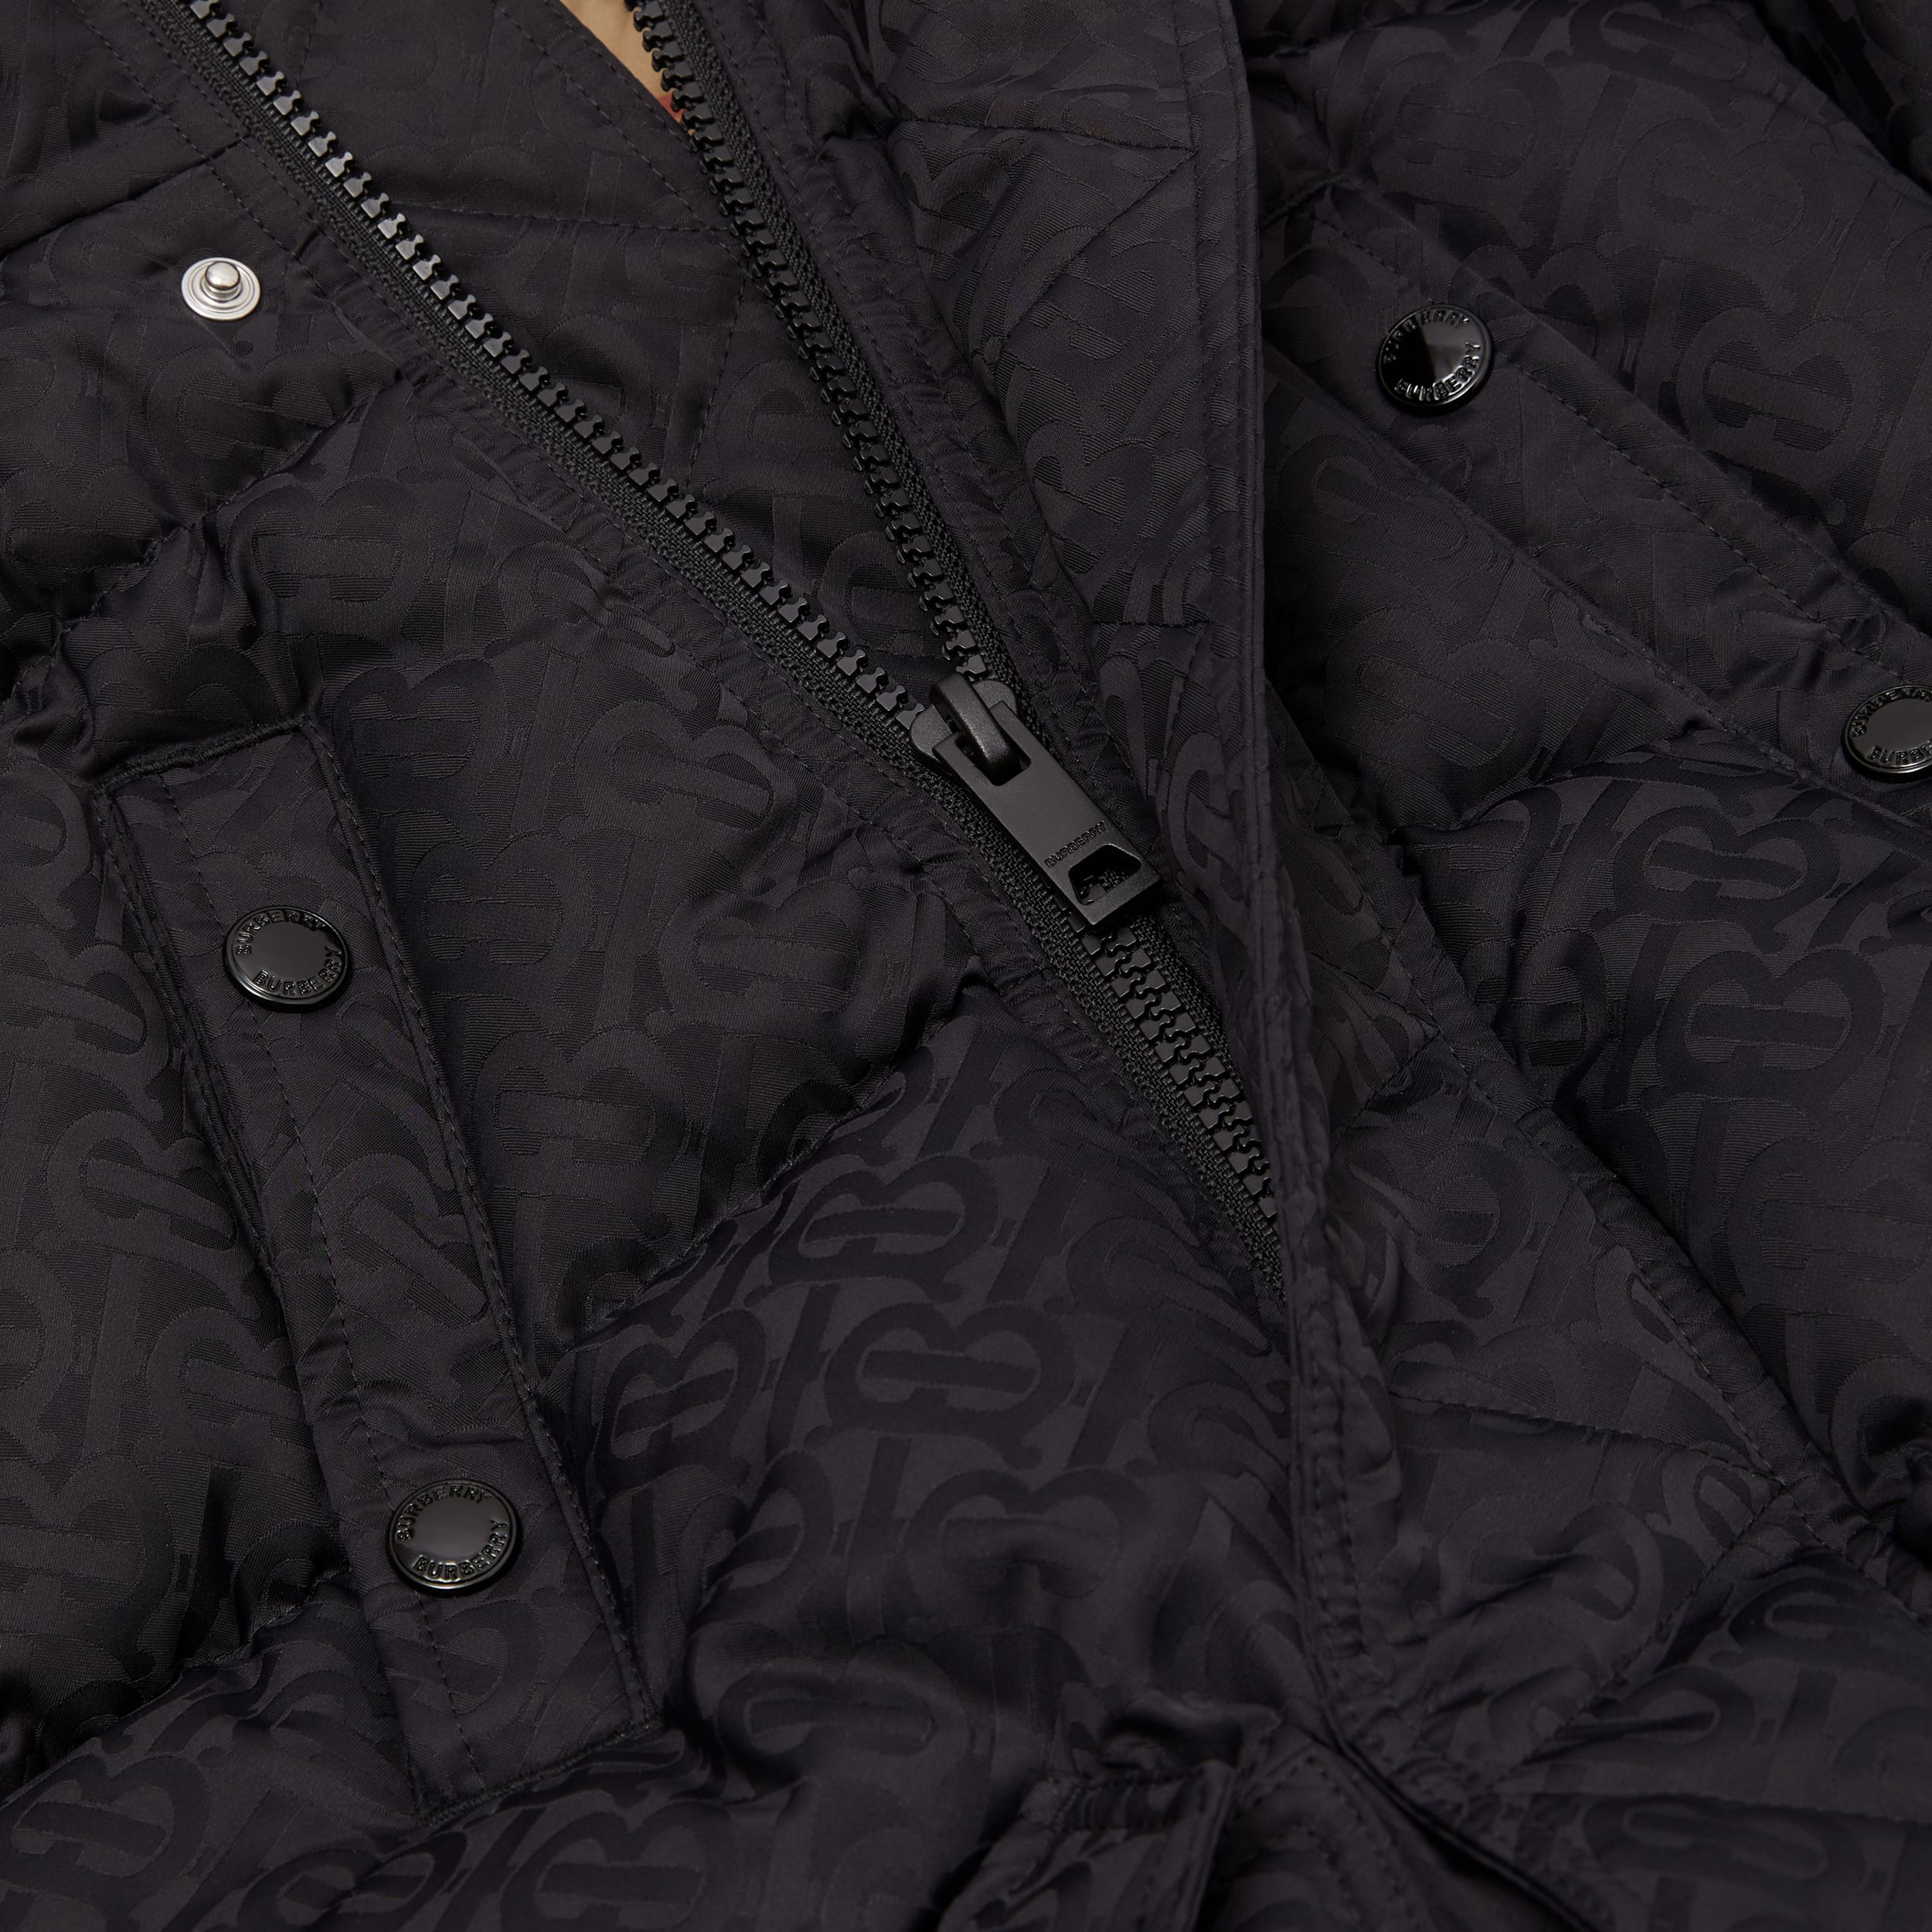 Detachable Hood Monogram Jacquard Puffer Coat in Black | Burberry United Kingdom - 2